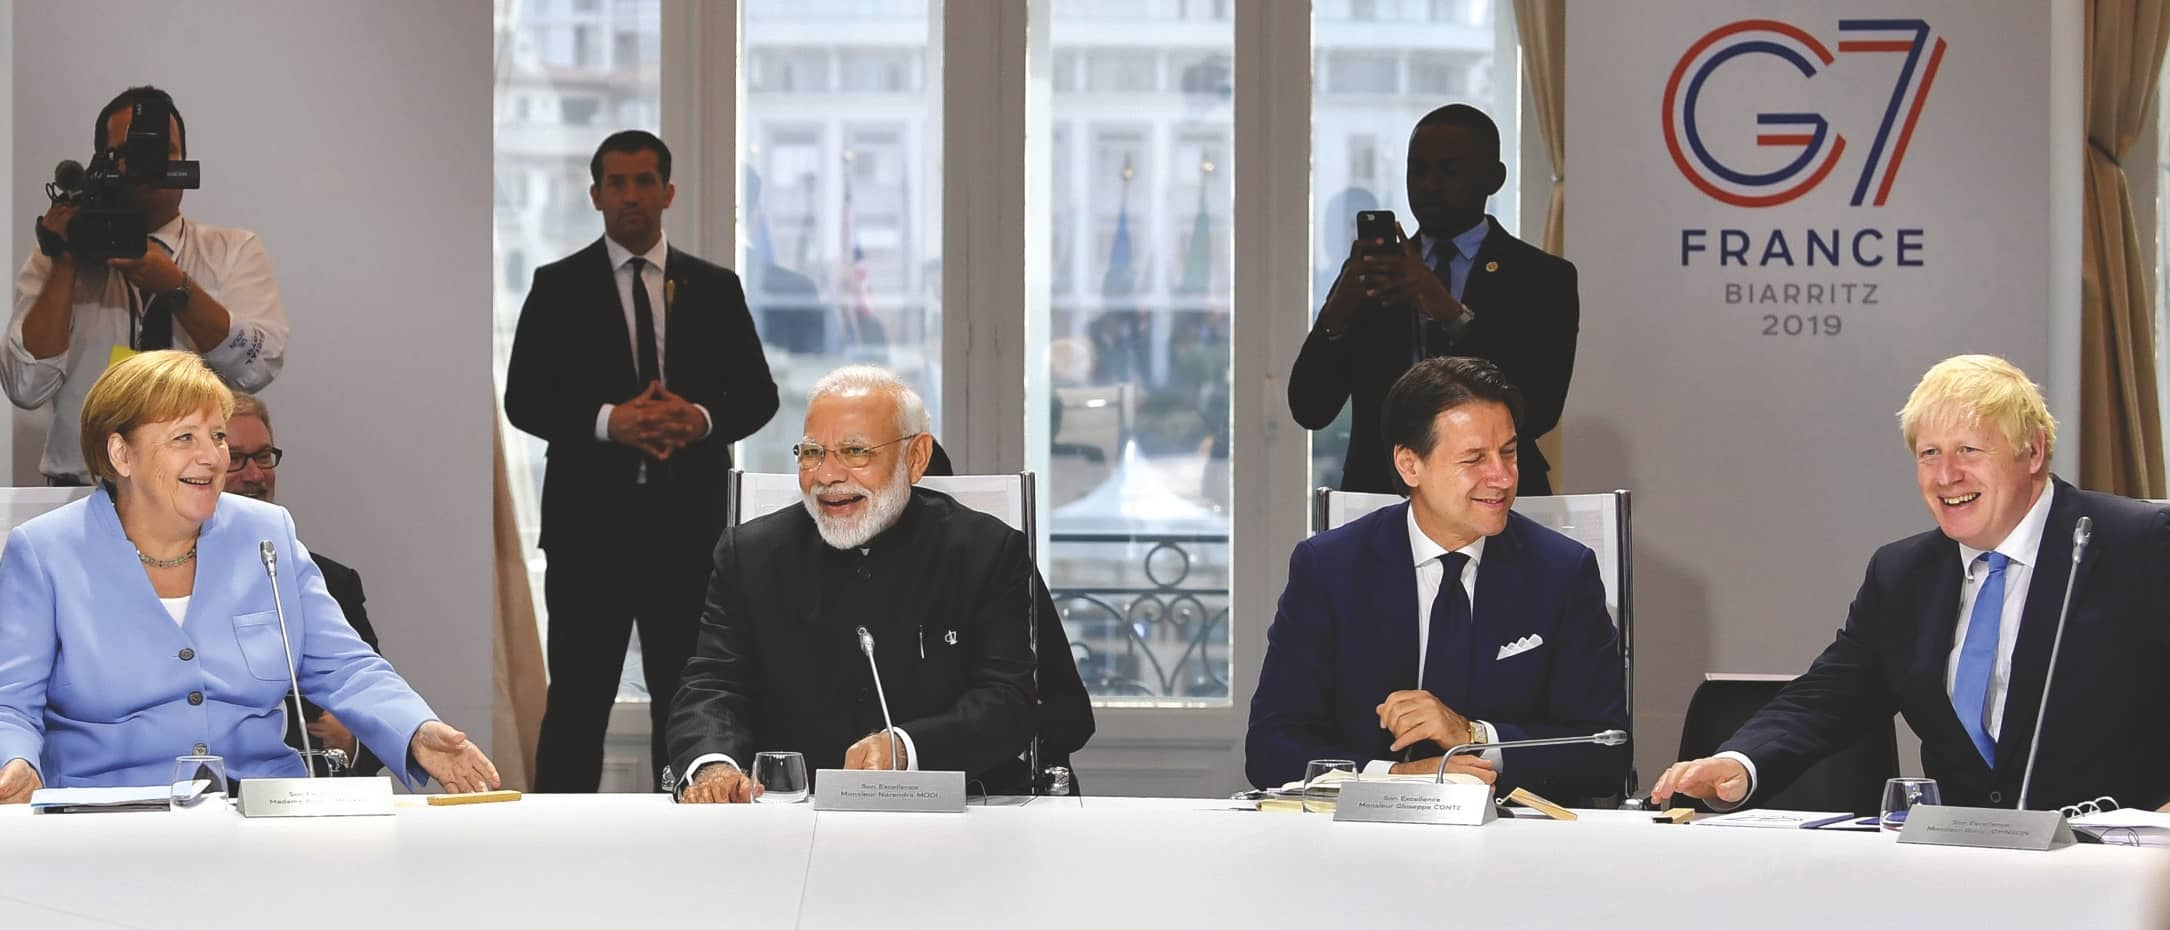 EXPANDING G7 WHAT DOES IT MEAN FOR INDIA?